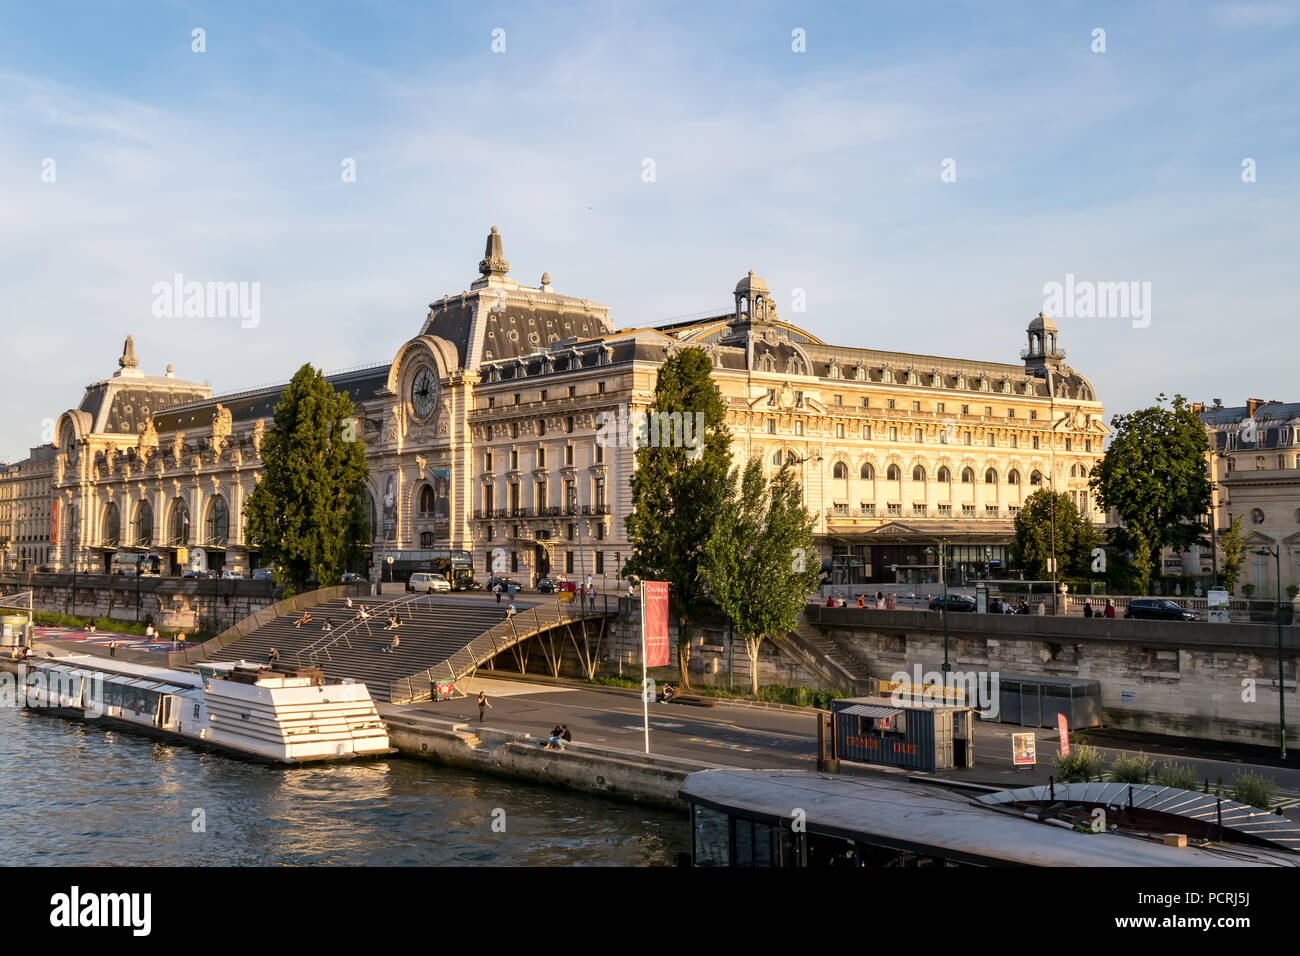 Musee d'Orsay - Paris, France - Stock Image